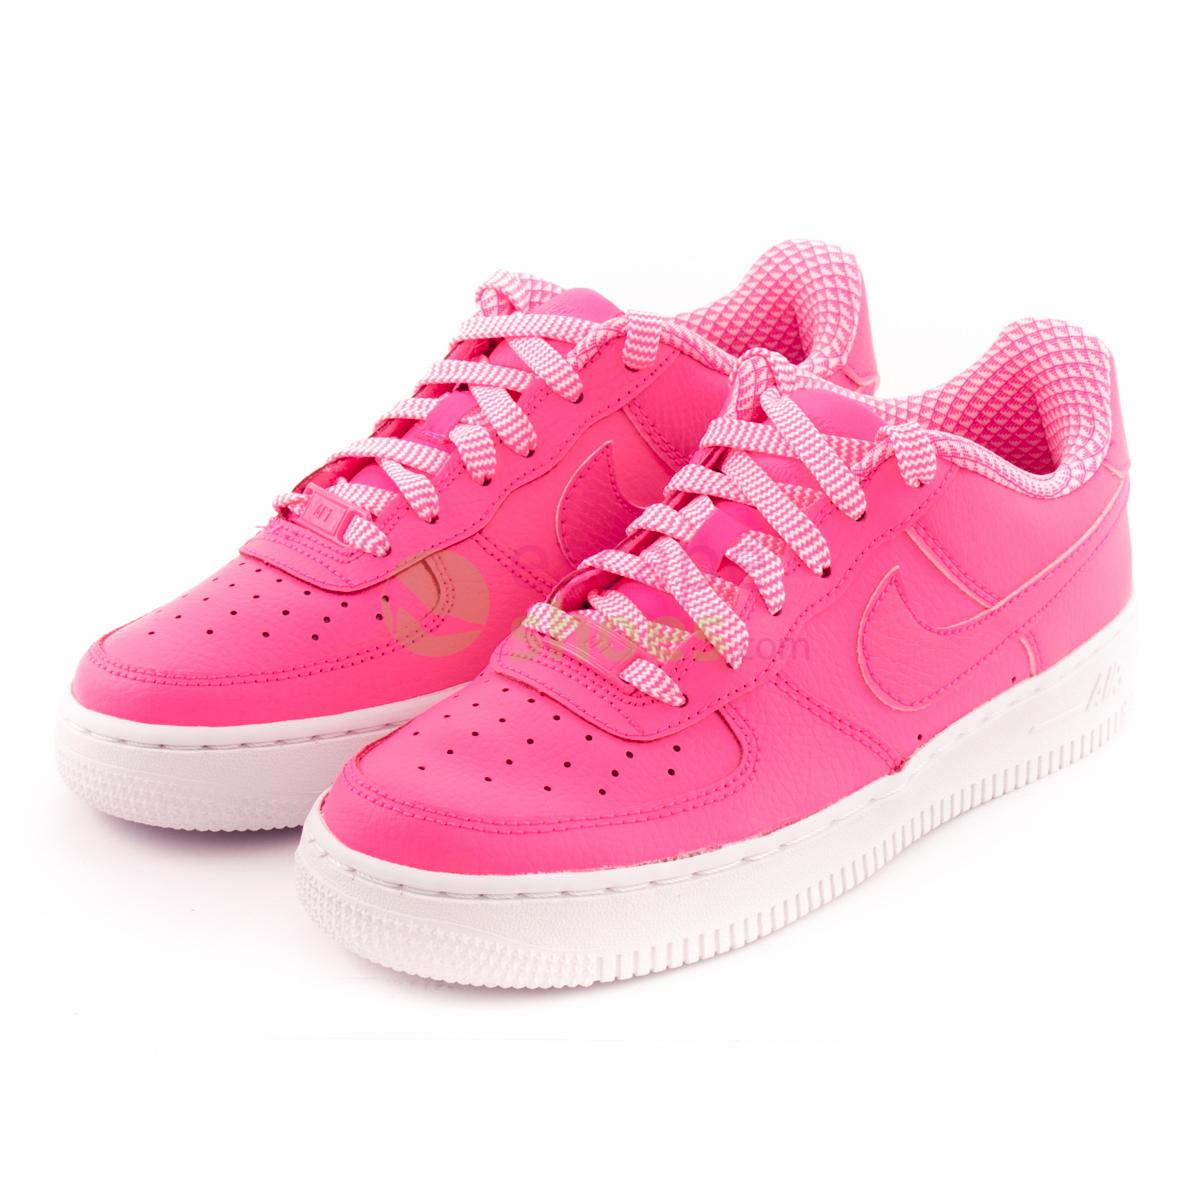 Sneakers NIKE Air Force 1 Gs Pink Pow White 314219 615